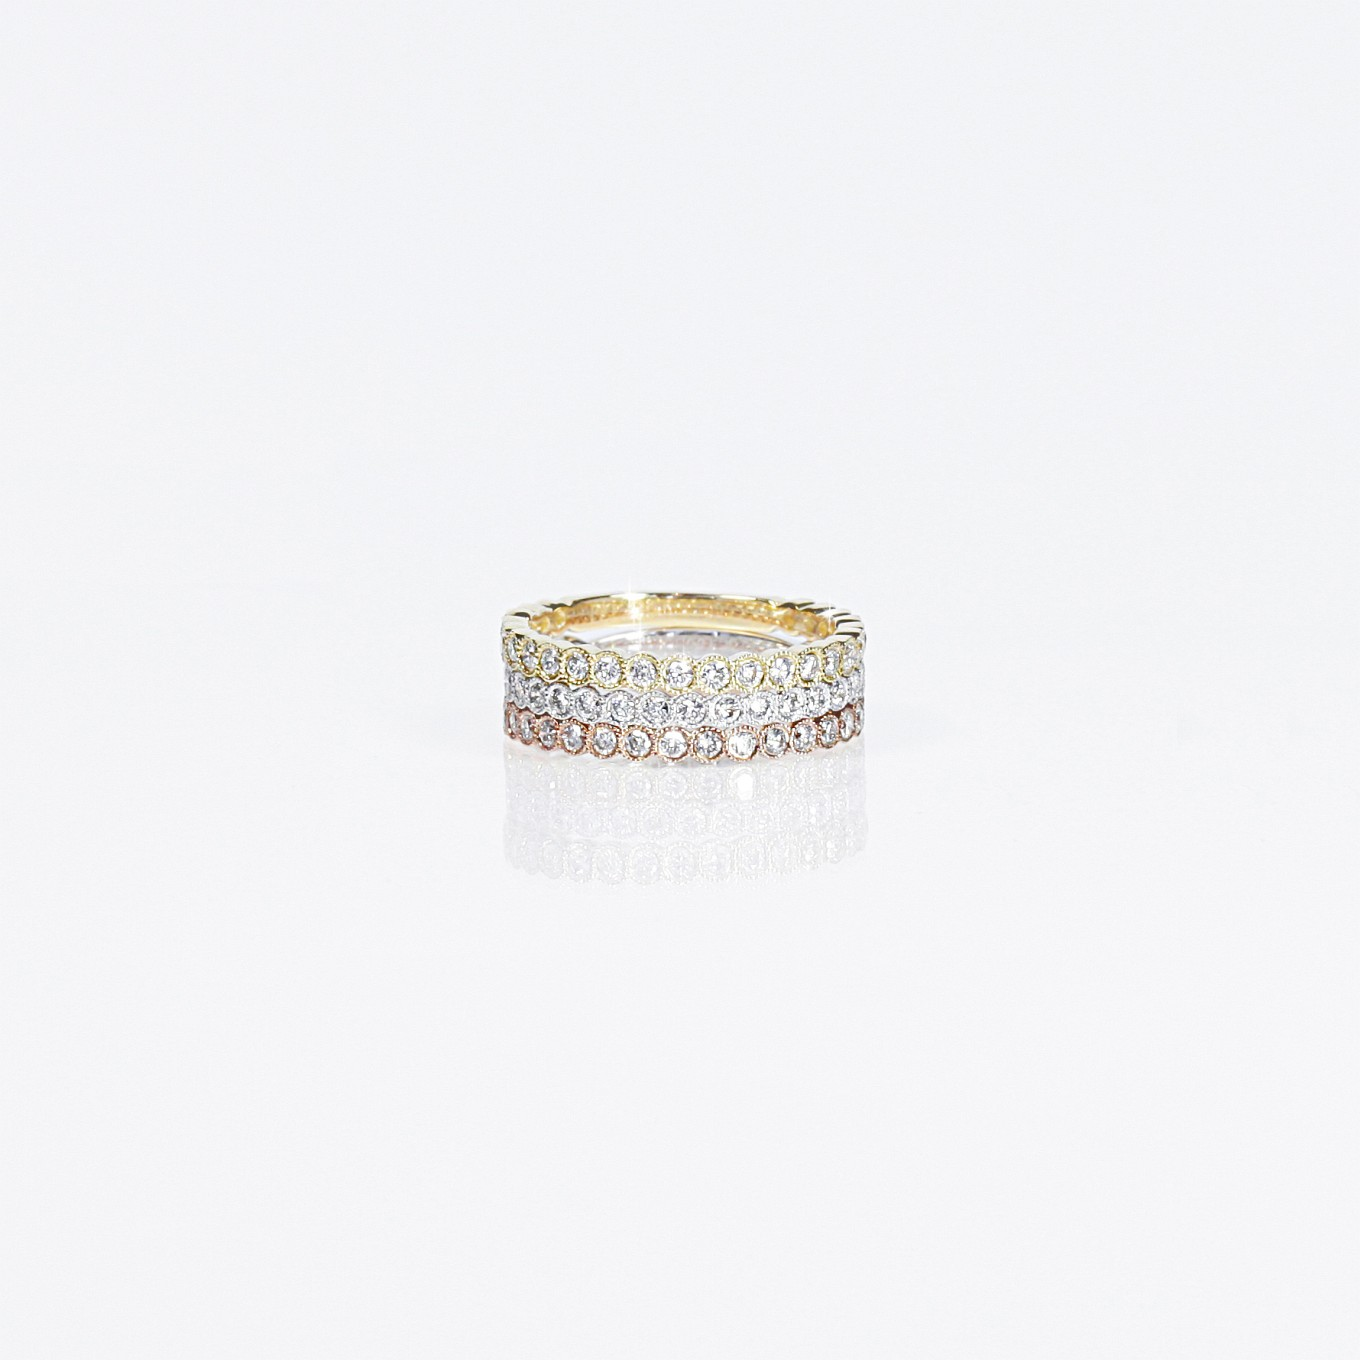 DIAMOND ETERNITY BANDS IN YELLOW WHITE & ROSE GOLD